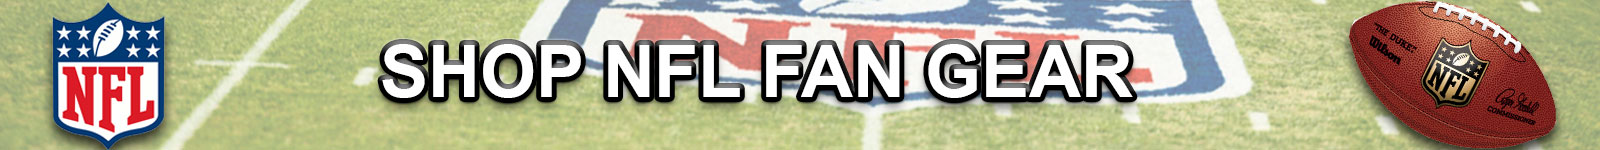 nfl-league-banner.jpg